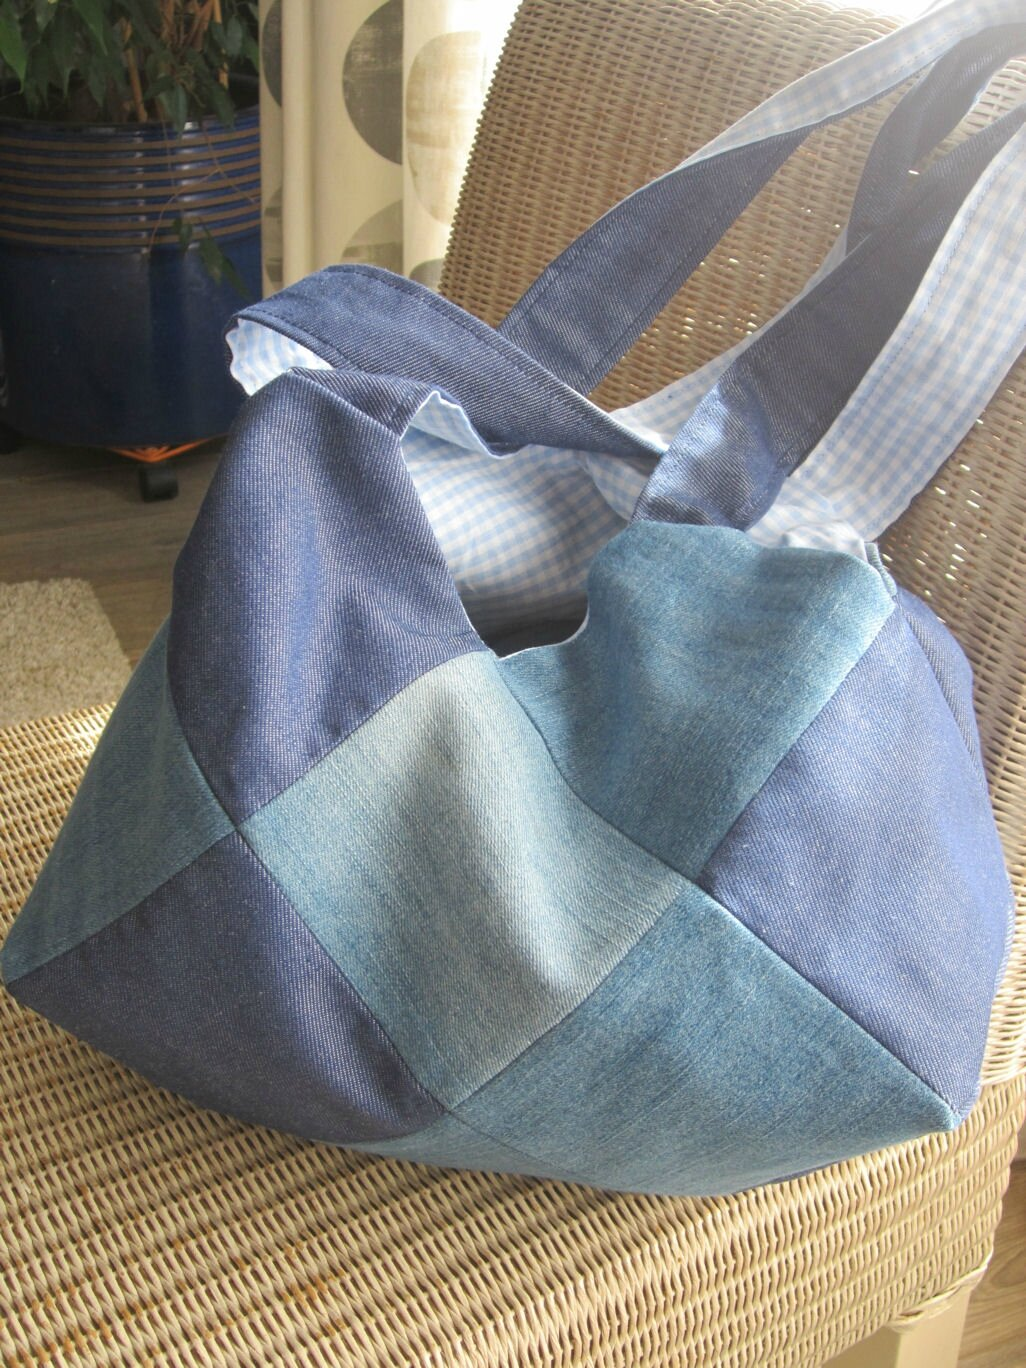 sac-a-main-jean-recyclage